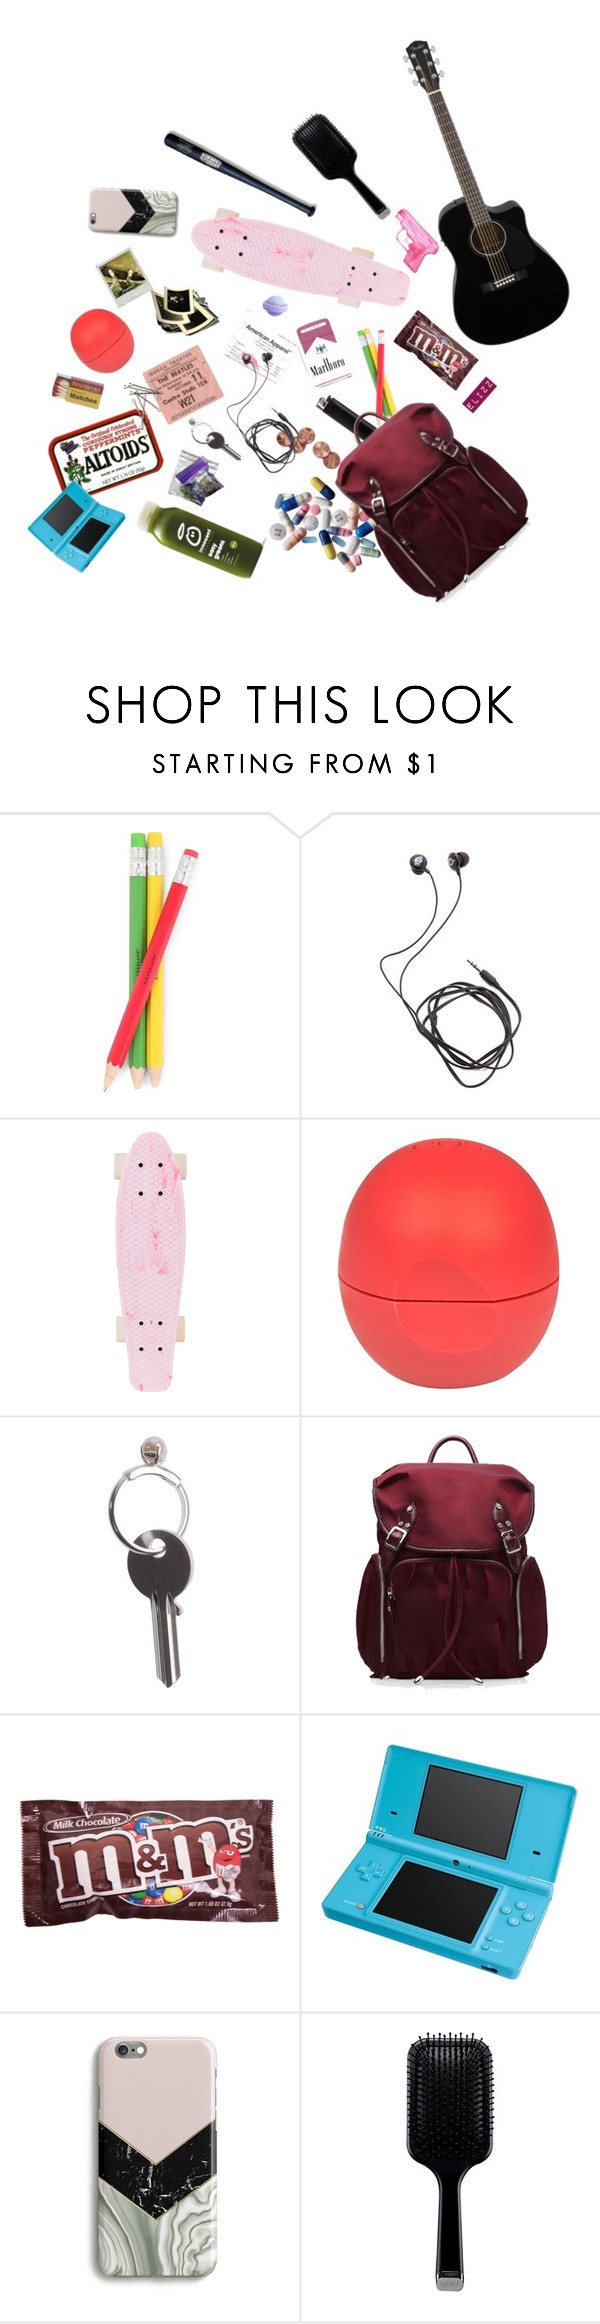 """""""What Is In My Bag"""" by elizz-denne on Polyvore featuring KEEP ME, Kikkerland, Diane Von Furstenberg, INC International Concepts, River Island, Maison Margiela, M Z Wallace, Candie's, Nintendo and GHD"""